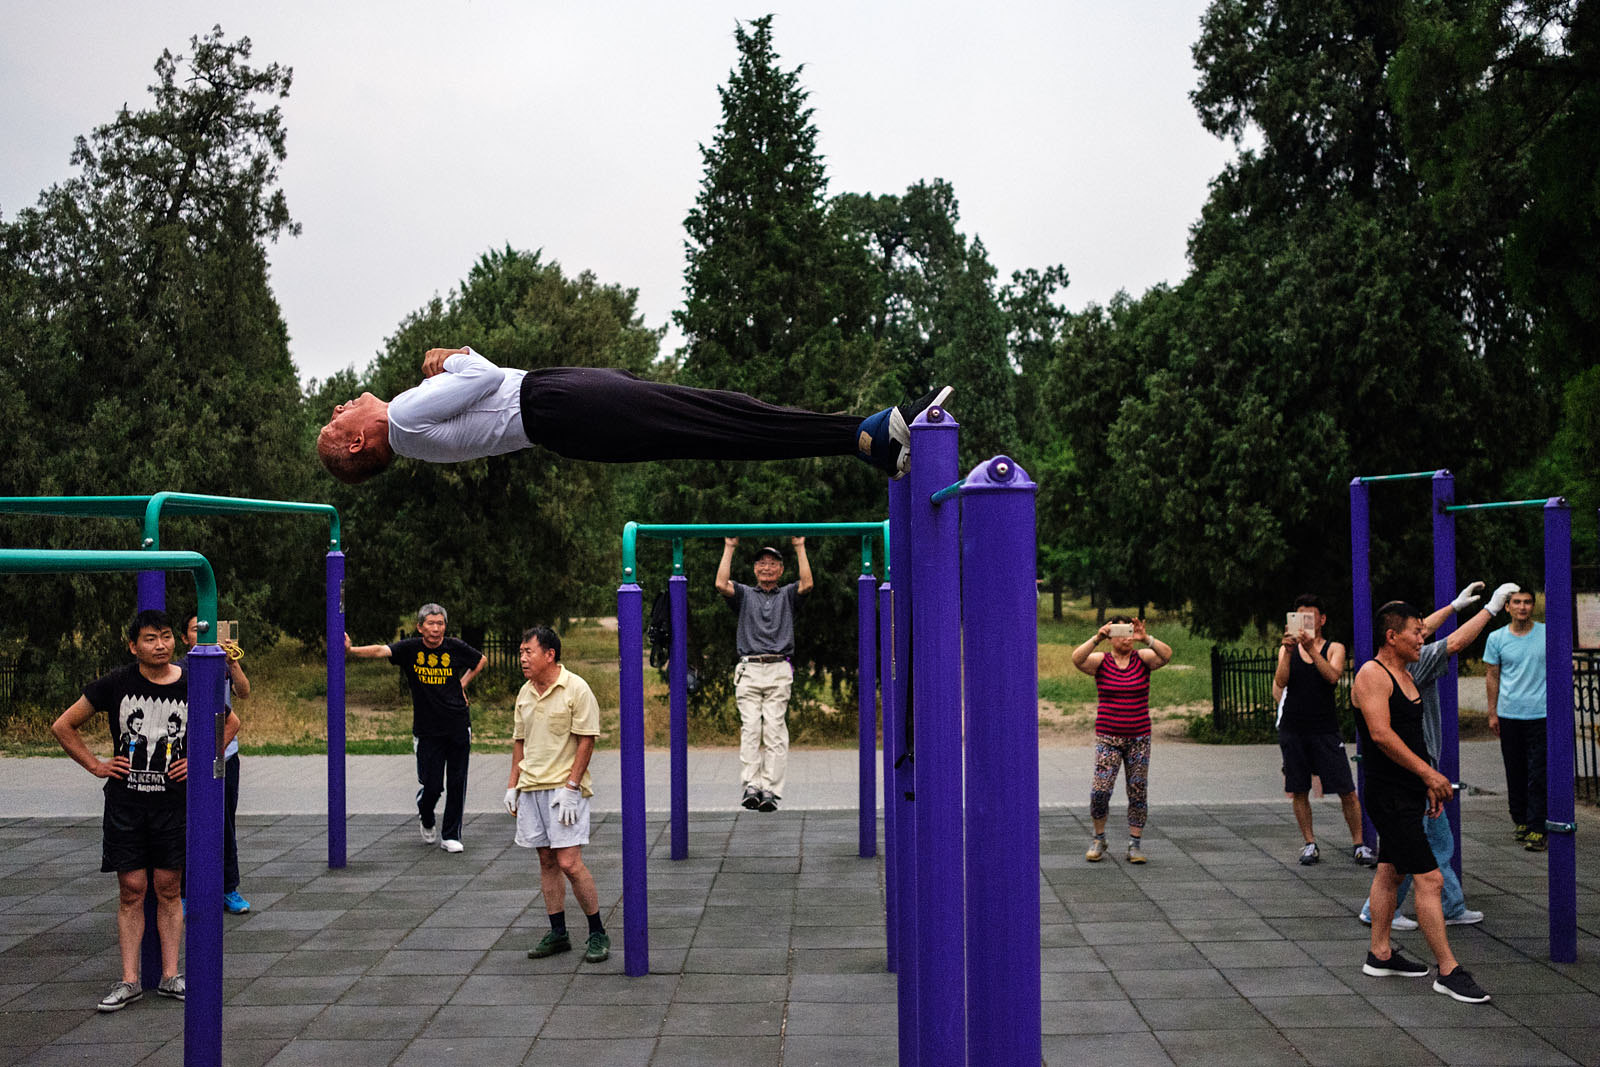 Park Fitness - Beijing, China | by Maciej Dakowicz